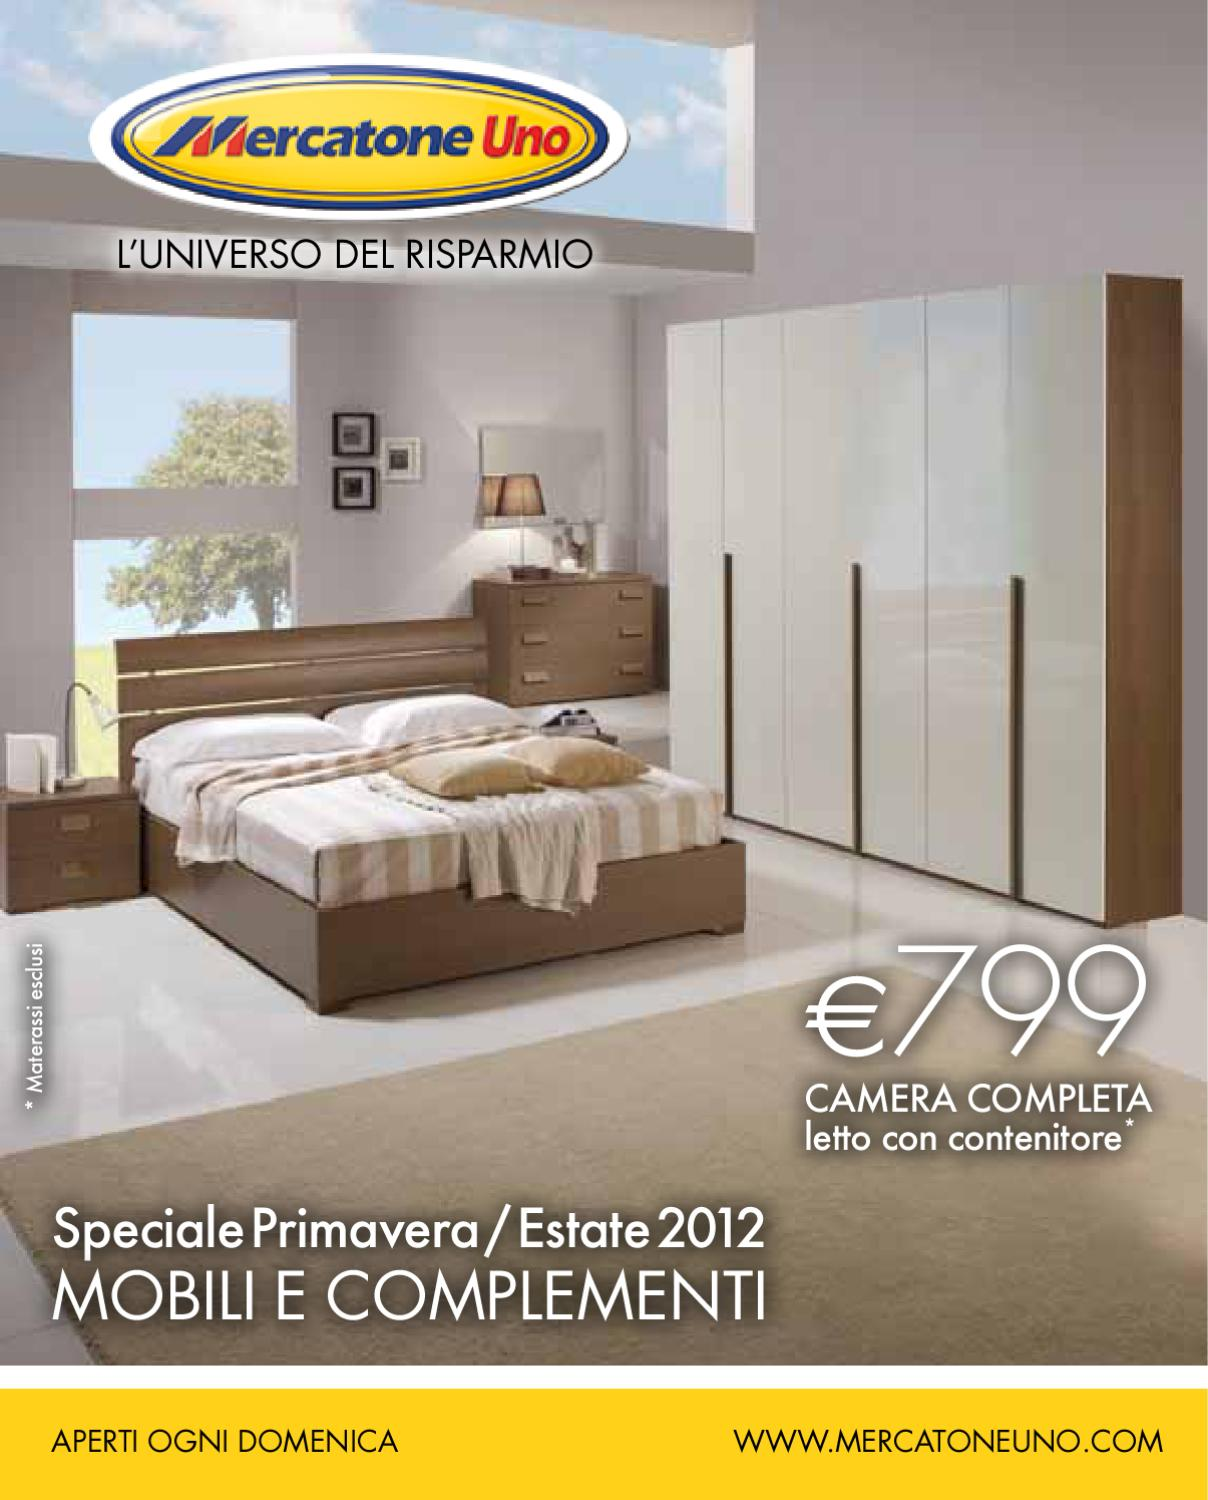 Mercatone Uno Catalogo Primavera/Estate 2012 by CatalogoPromozioni ...